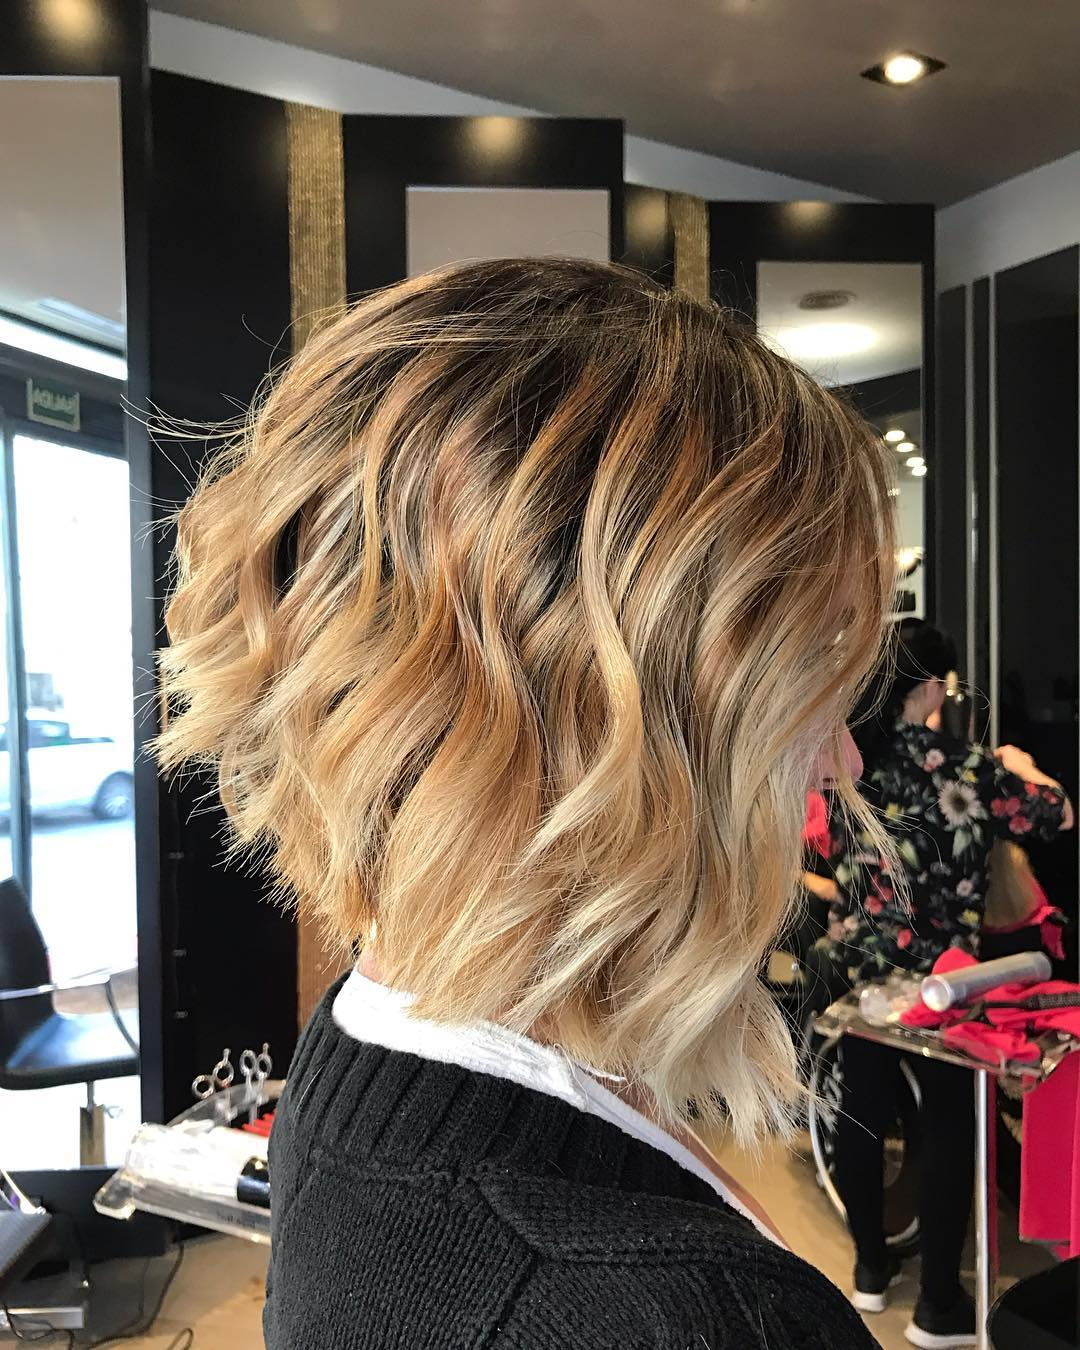 10 Layered Bob Hairstyles - Look Fab in New Blonde Shades! - PoPular ...